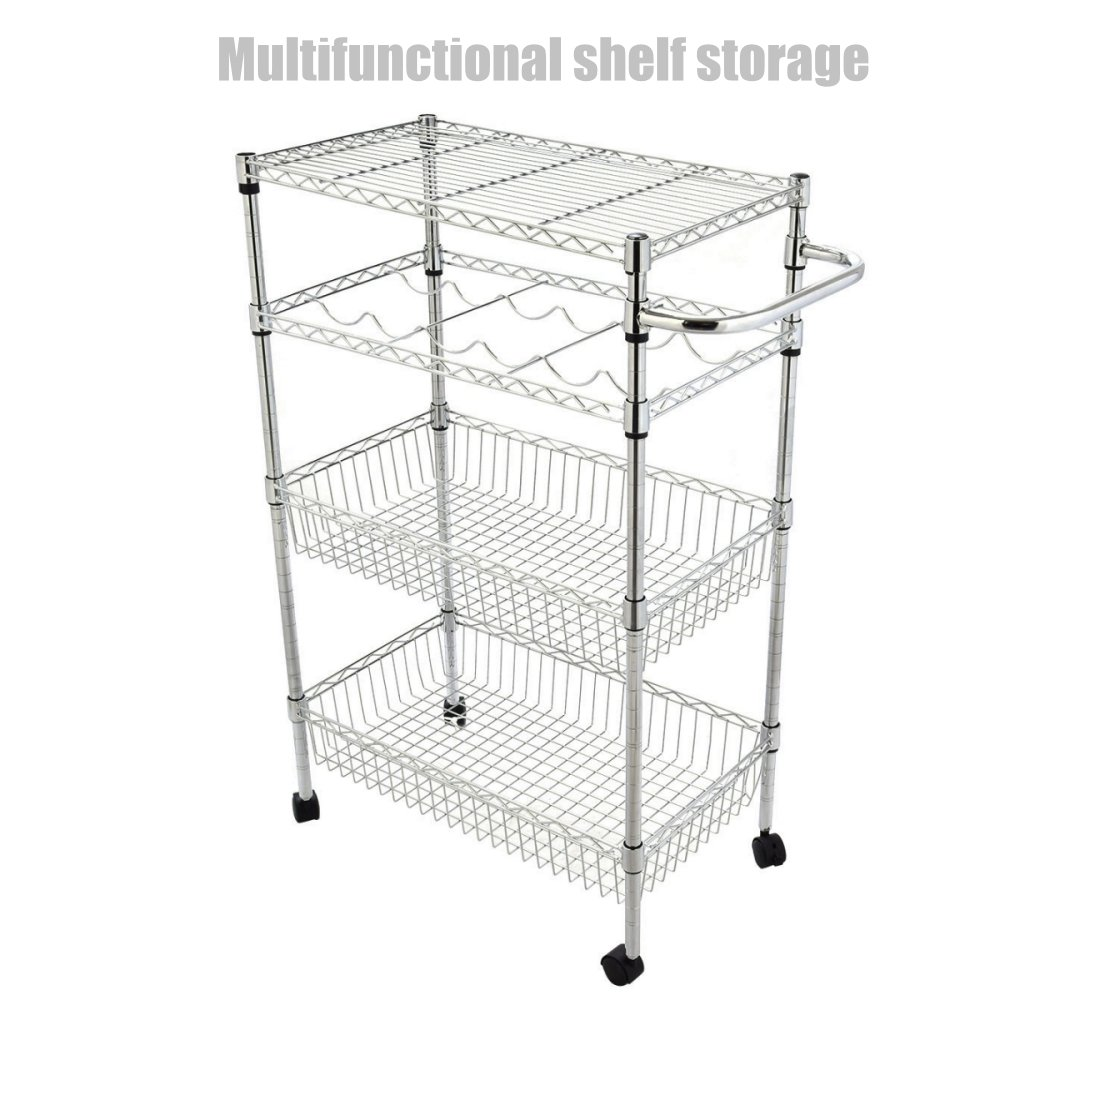 4 Tier Heavy Duty Kitchen Office Rack Wine CollectionStand Storage Trolley Cart Strong Welded Wire Shelving Adjustable Rack Durable Construction Stable Castor Wheels - Chrome Finish #1305